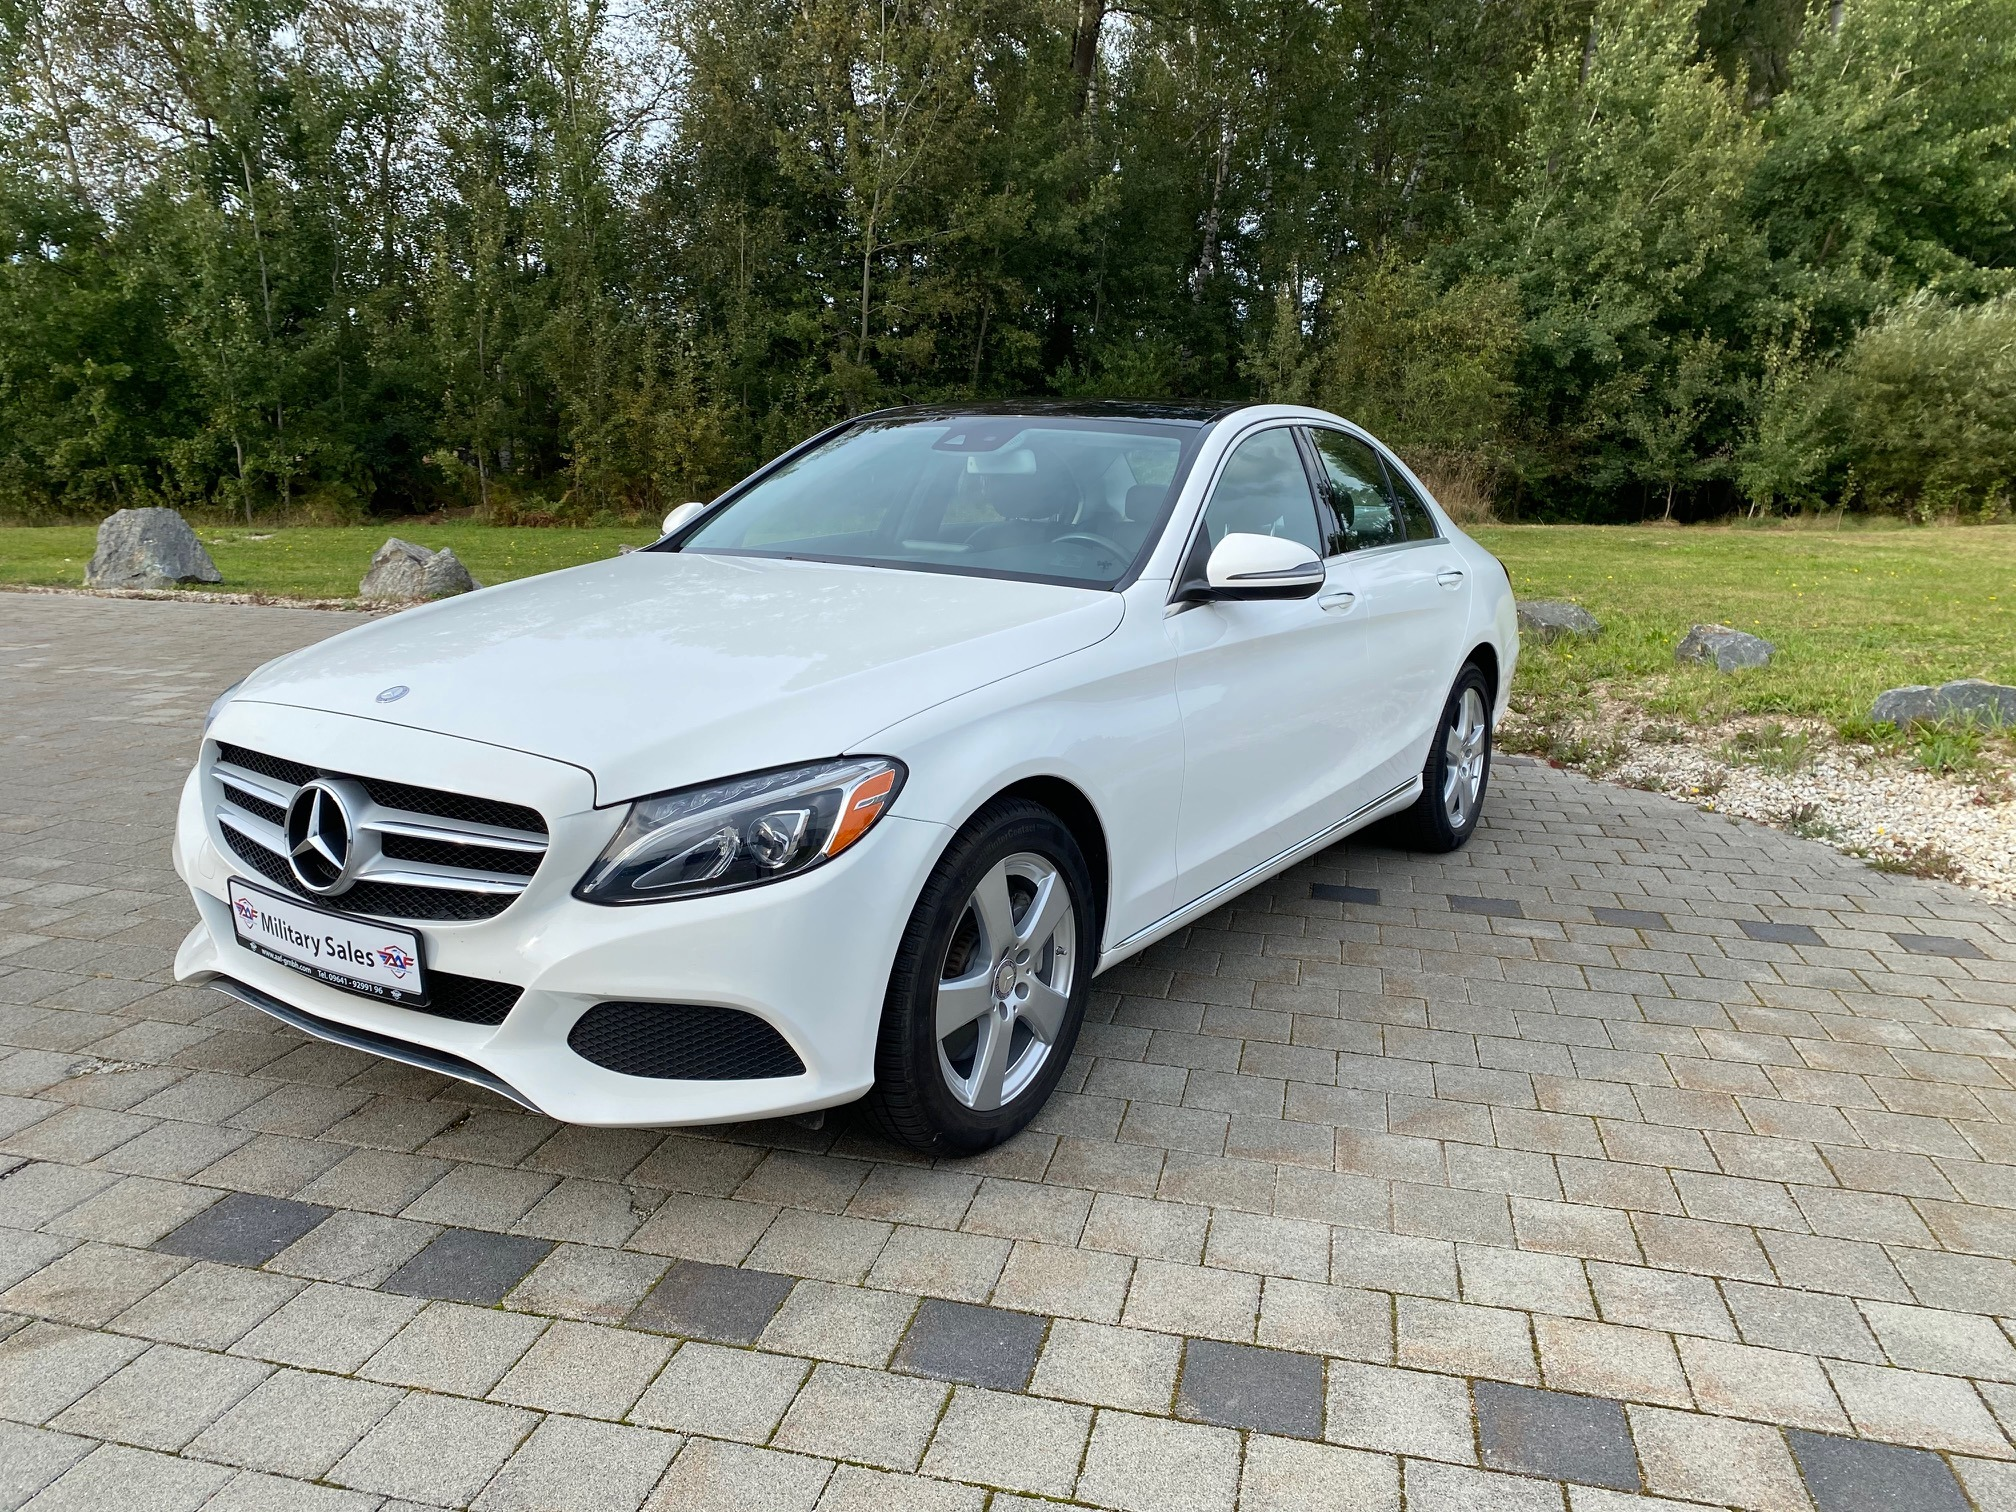 *New Arrival*</br>2017 Mercedes C300 W4</br>AS LOW AS </br>$219 per paycheck